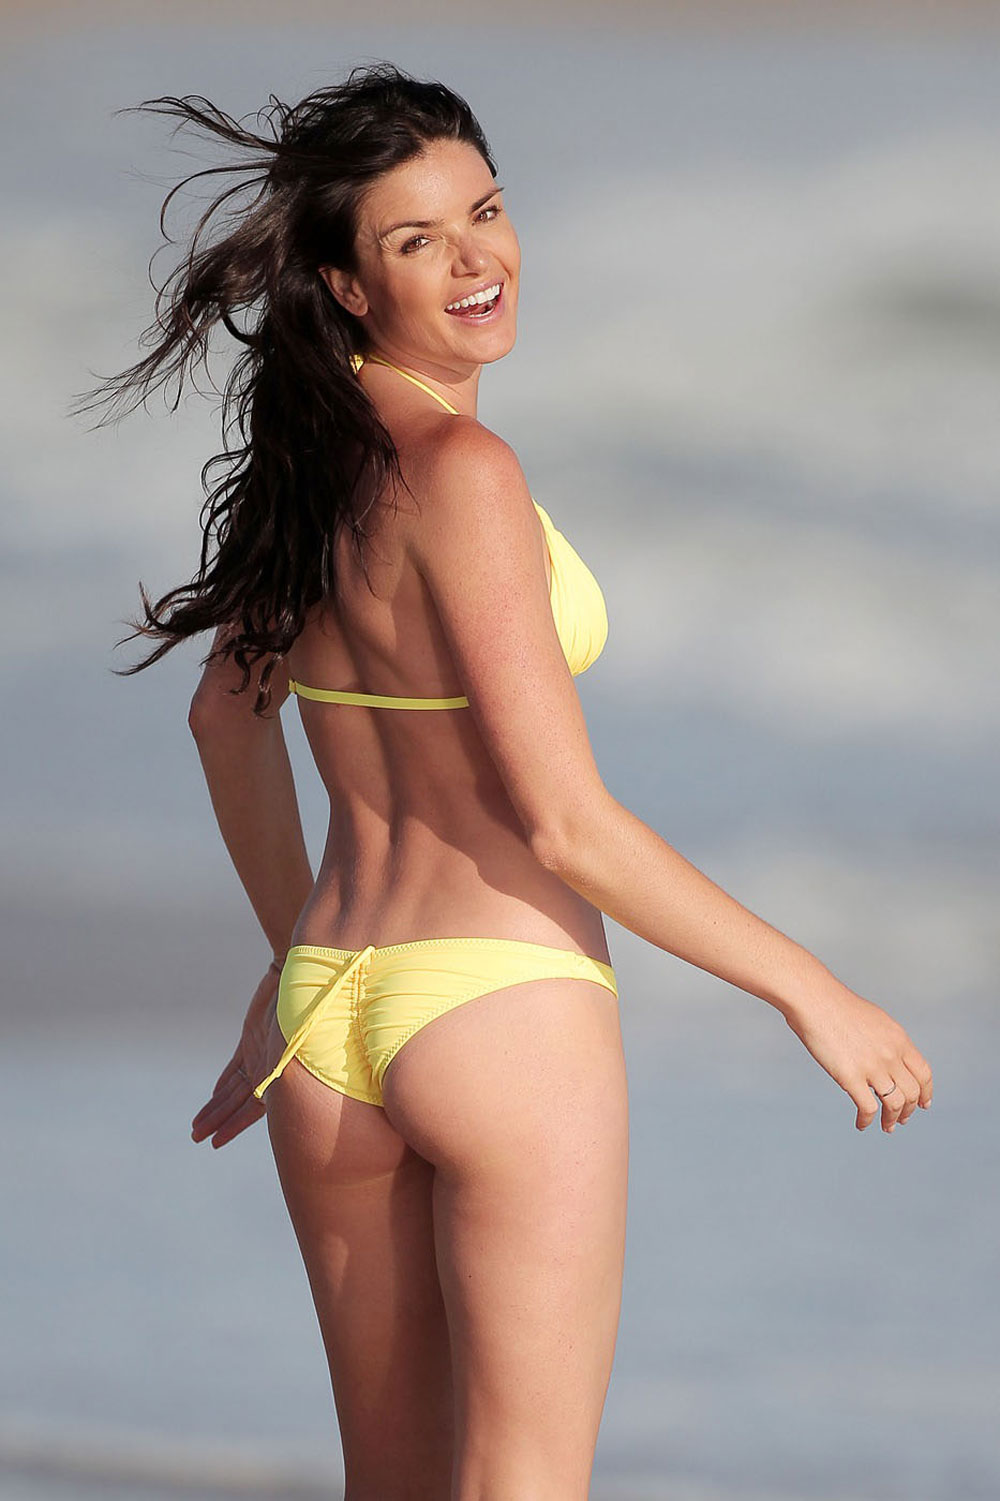 Courtney Robertson Spotted Reading Fifty Shades Of Grey At A Beach Flaunts Bikini Body In